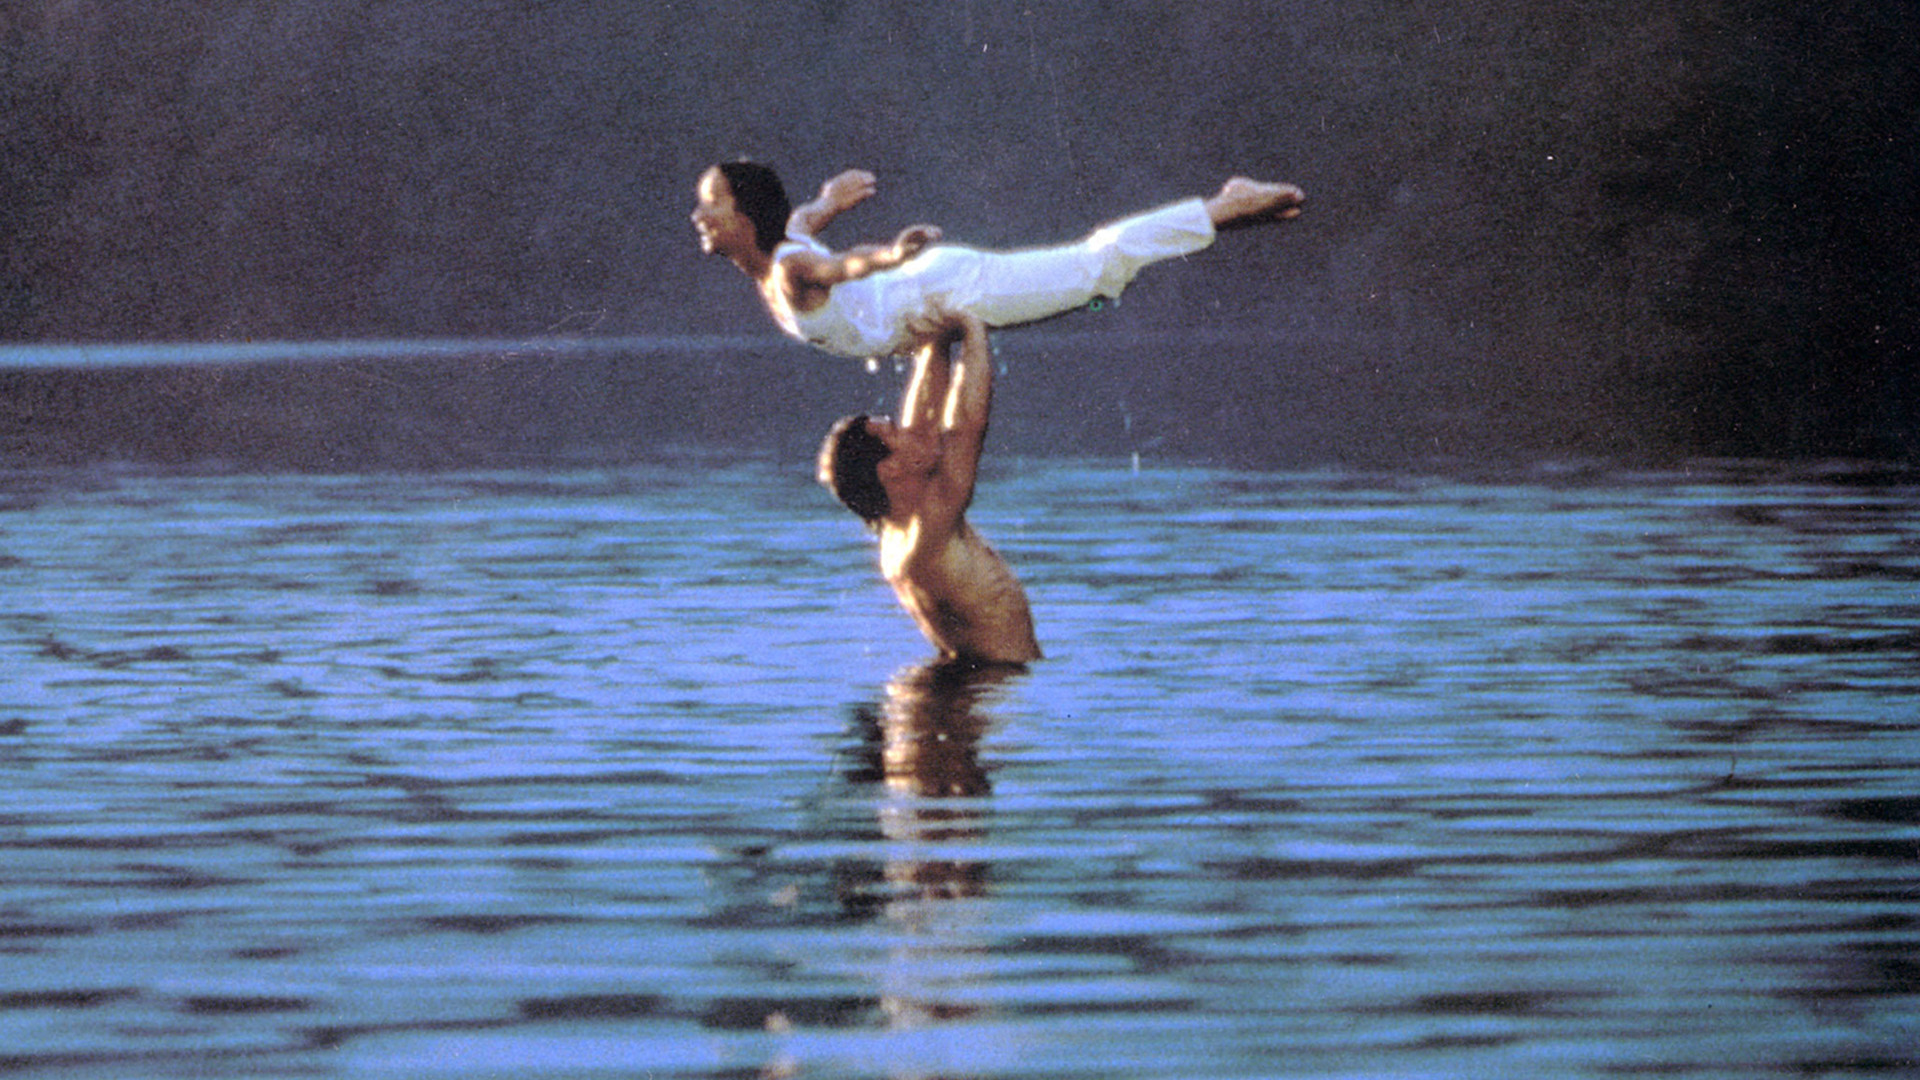 Res: 1920x1080, Patrick Swayze battled knee pain during 'Dirty Dancing' lake scene -  TODAY.com